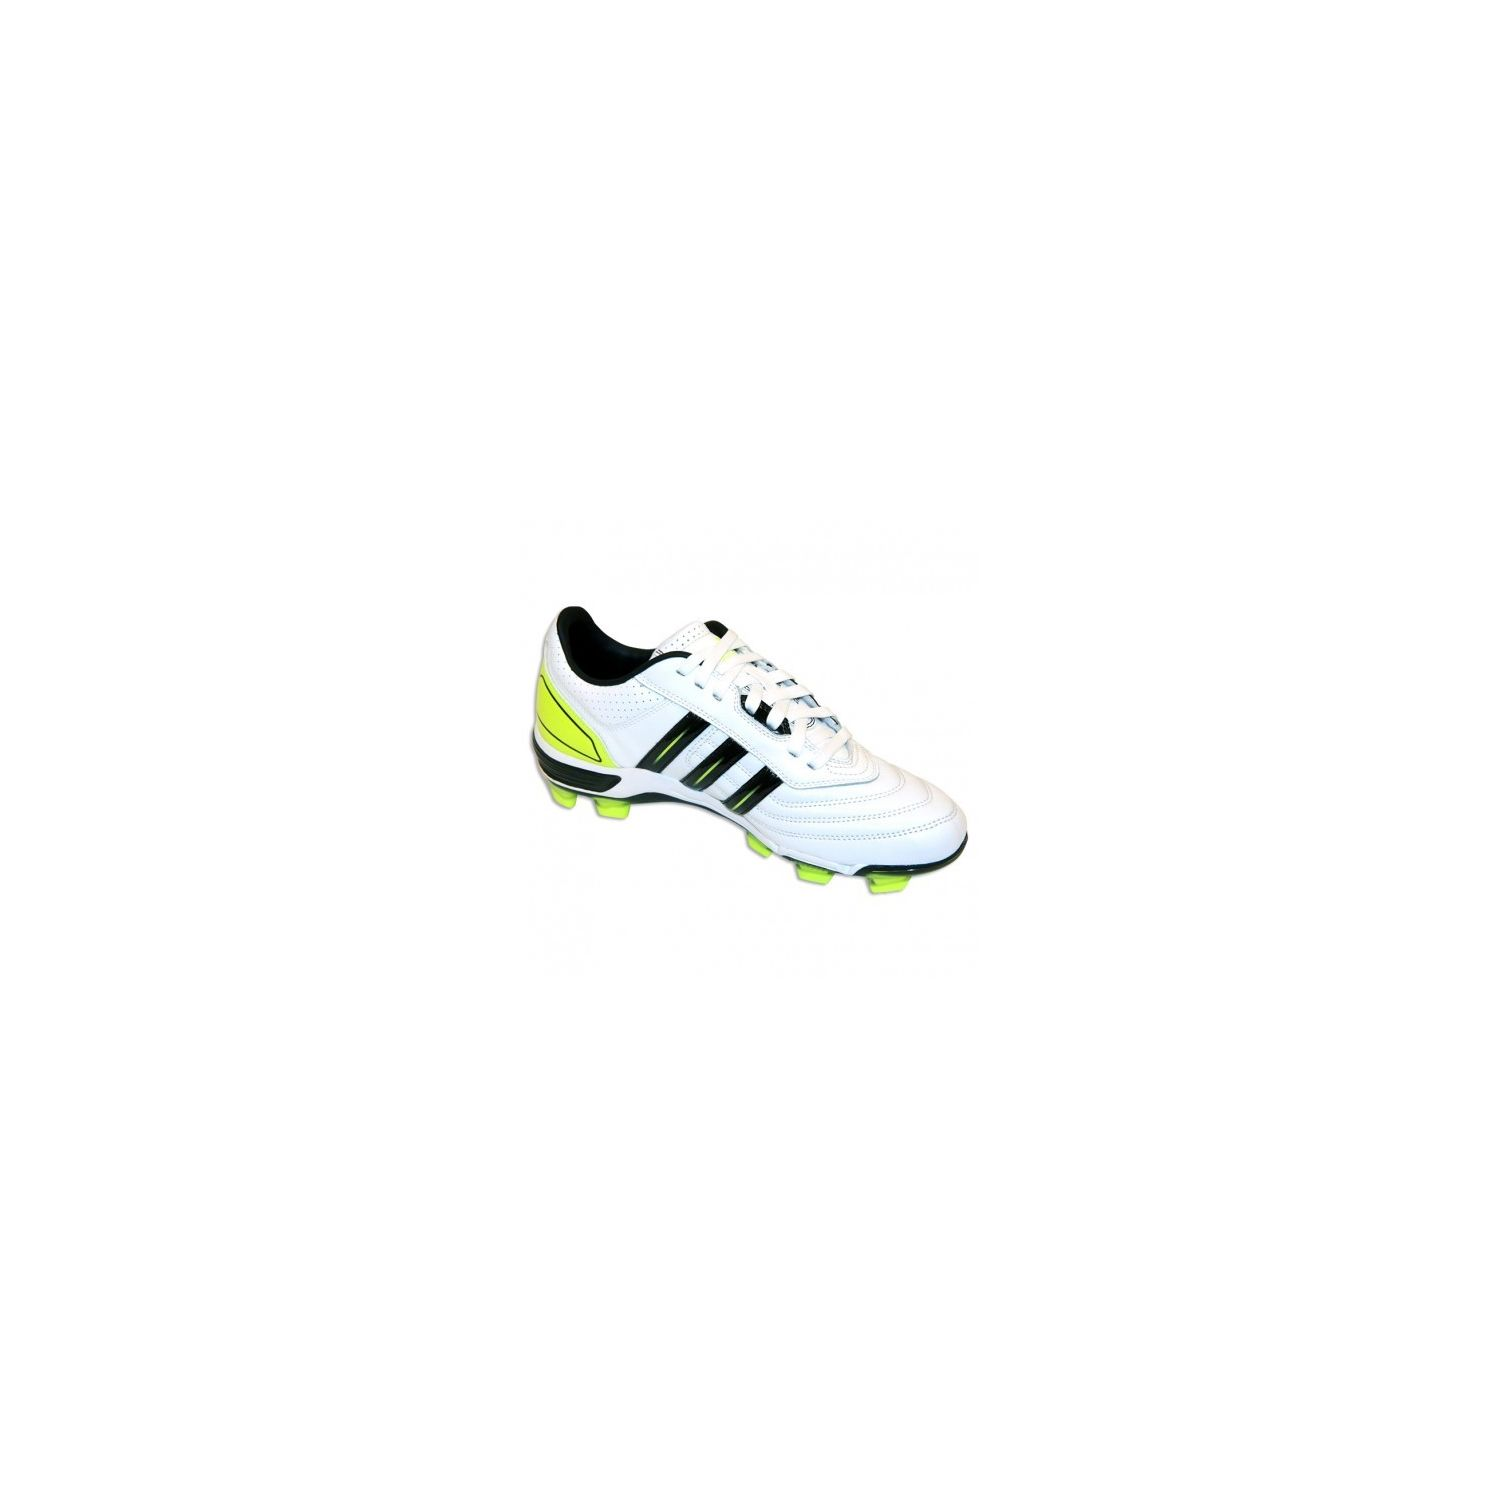 Pro Homme Originals Pas Chaussures M Blc 118 Rugby Adidas EvR1qn